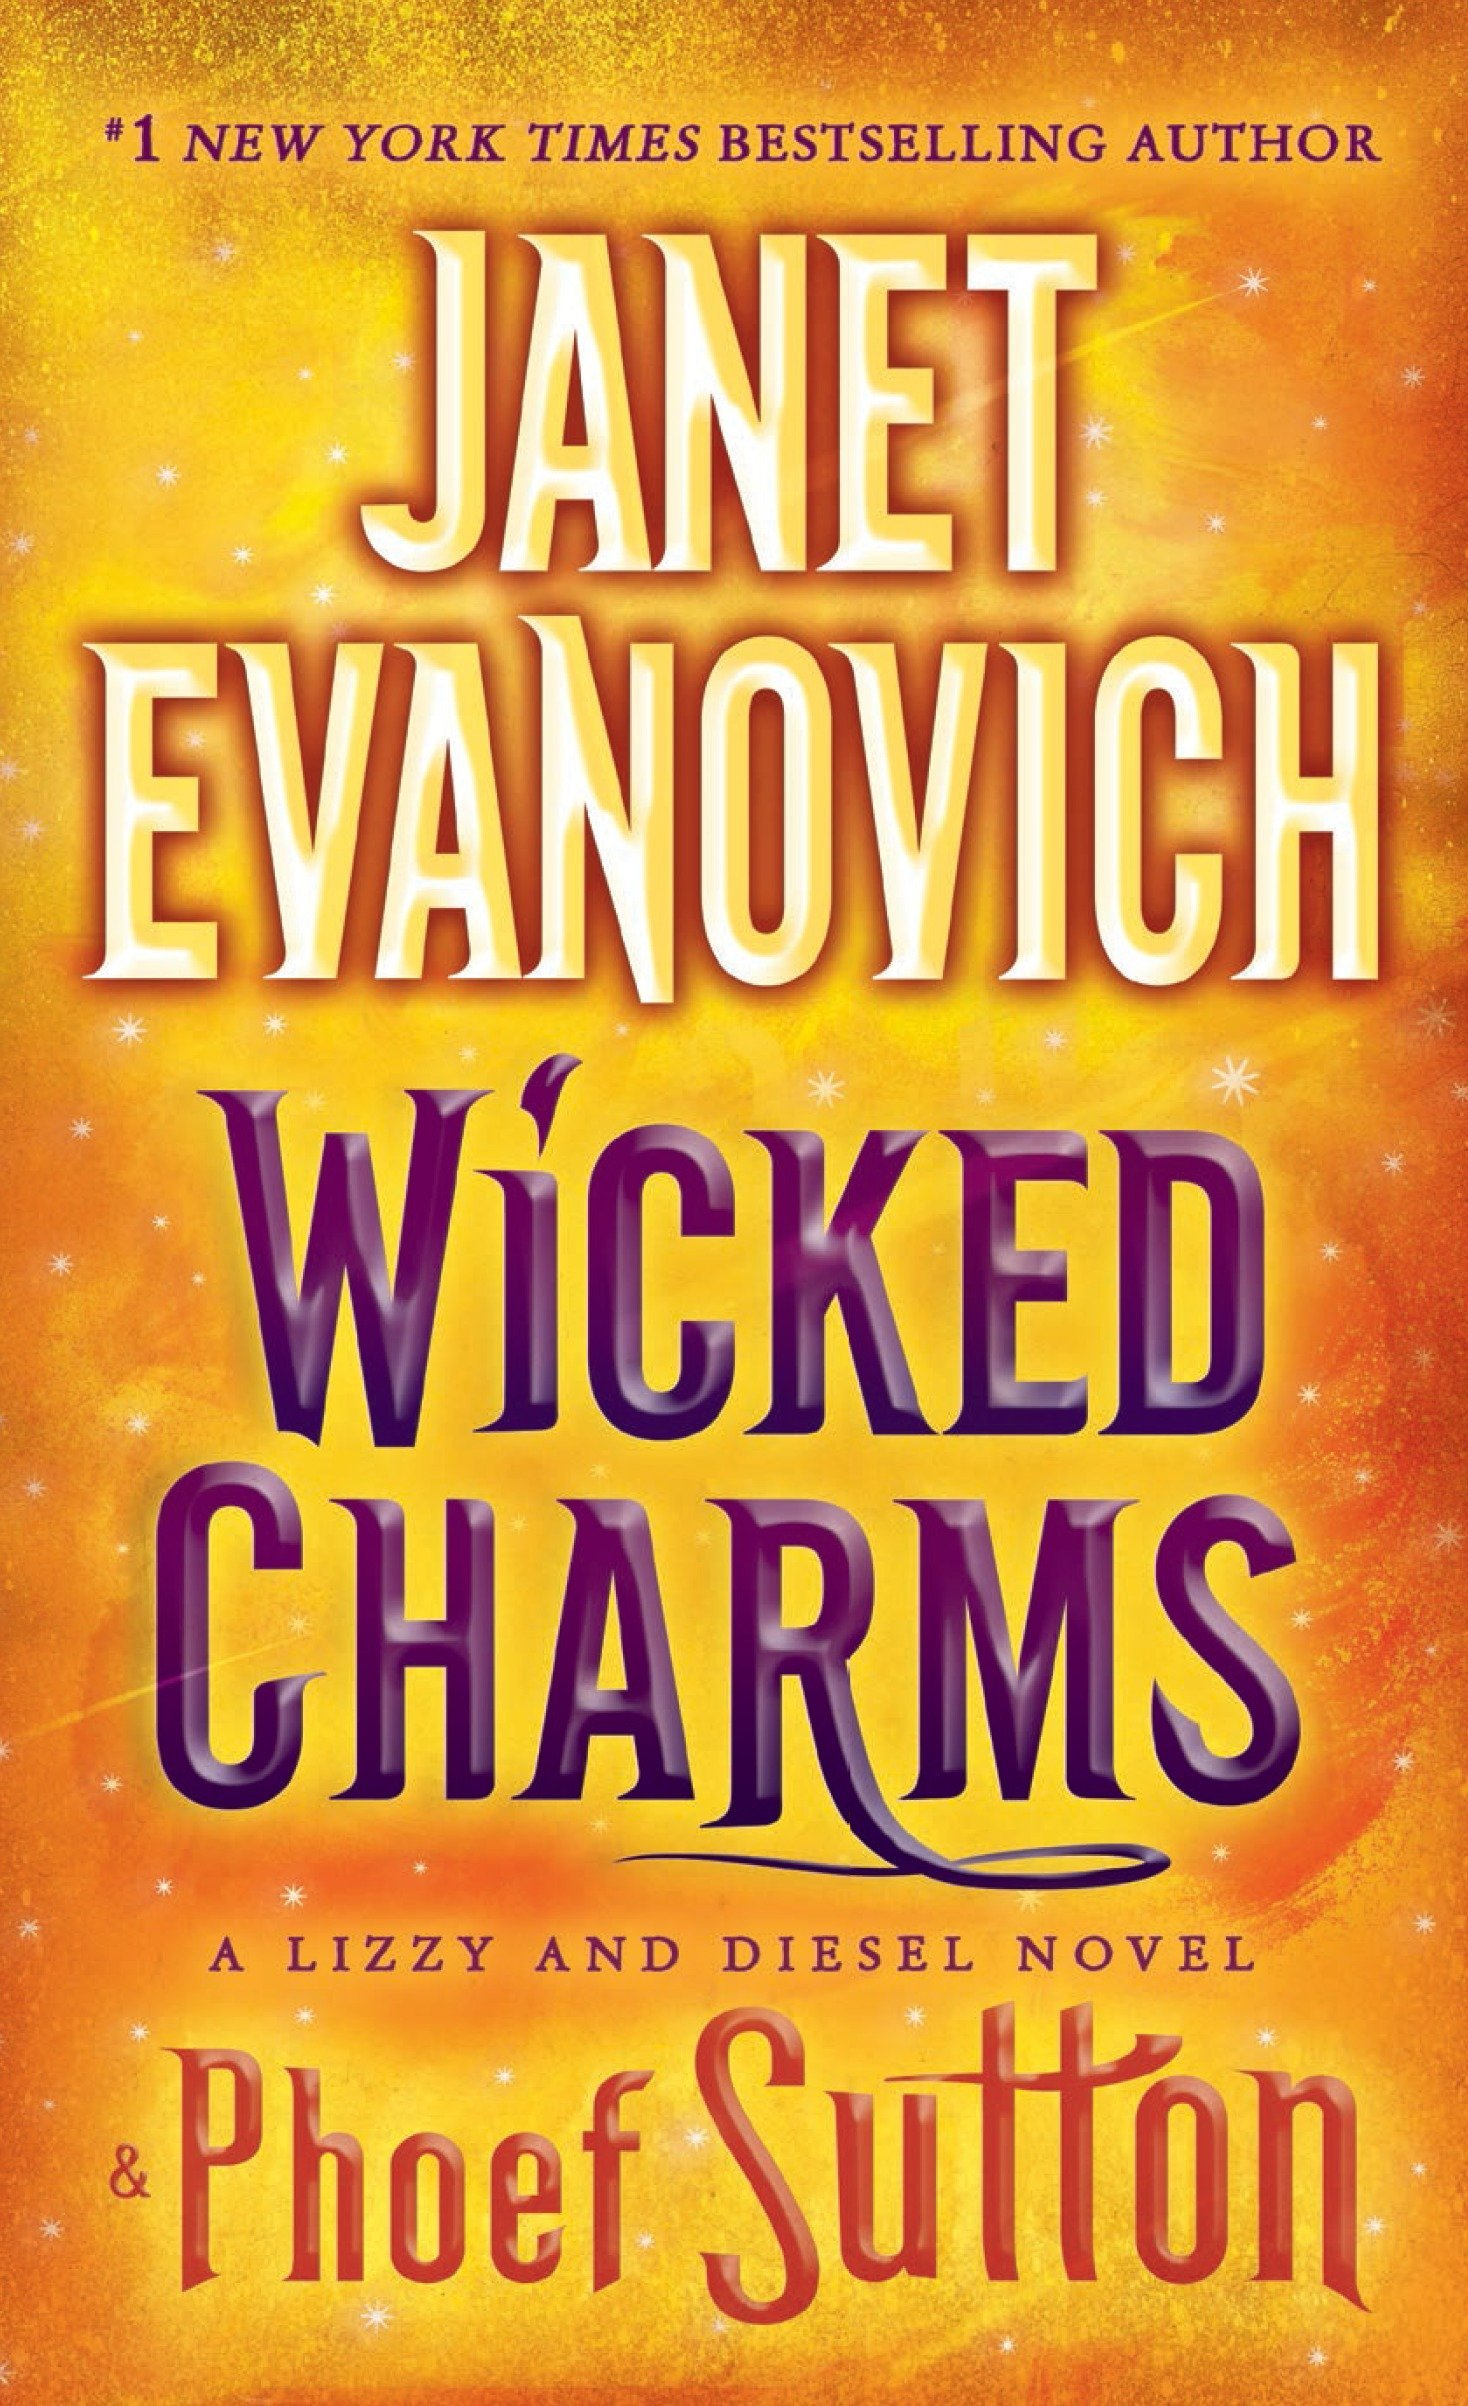 Amazon.com: Wicked Charms: A Lizzy and Diesel Novel (Lizzy & Diesel)  (9780553392739): Janet Evanovich, Phoef Sutton: Books